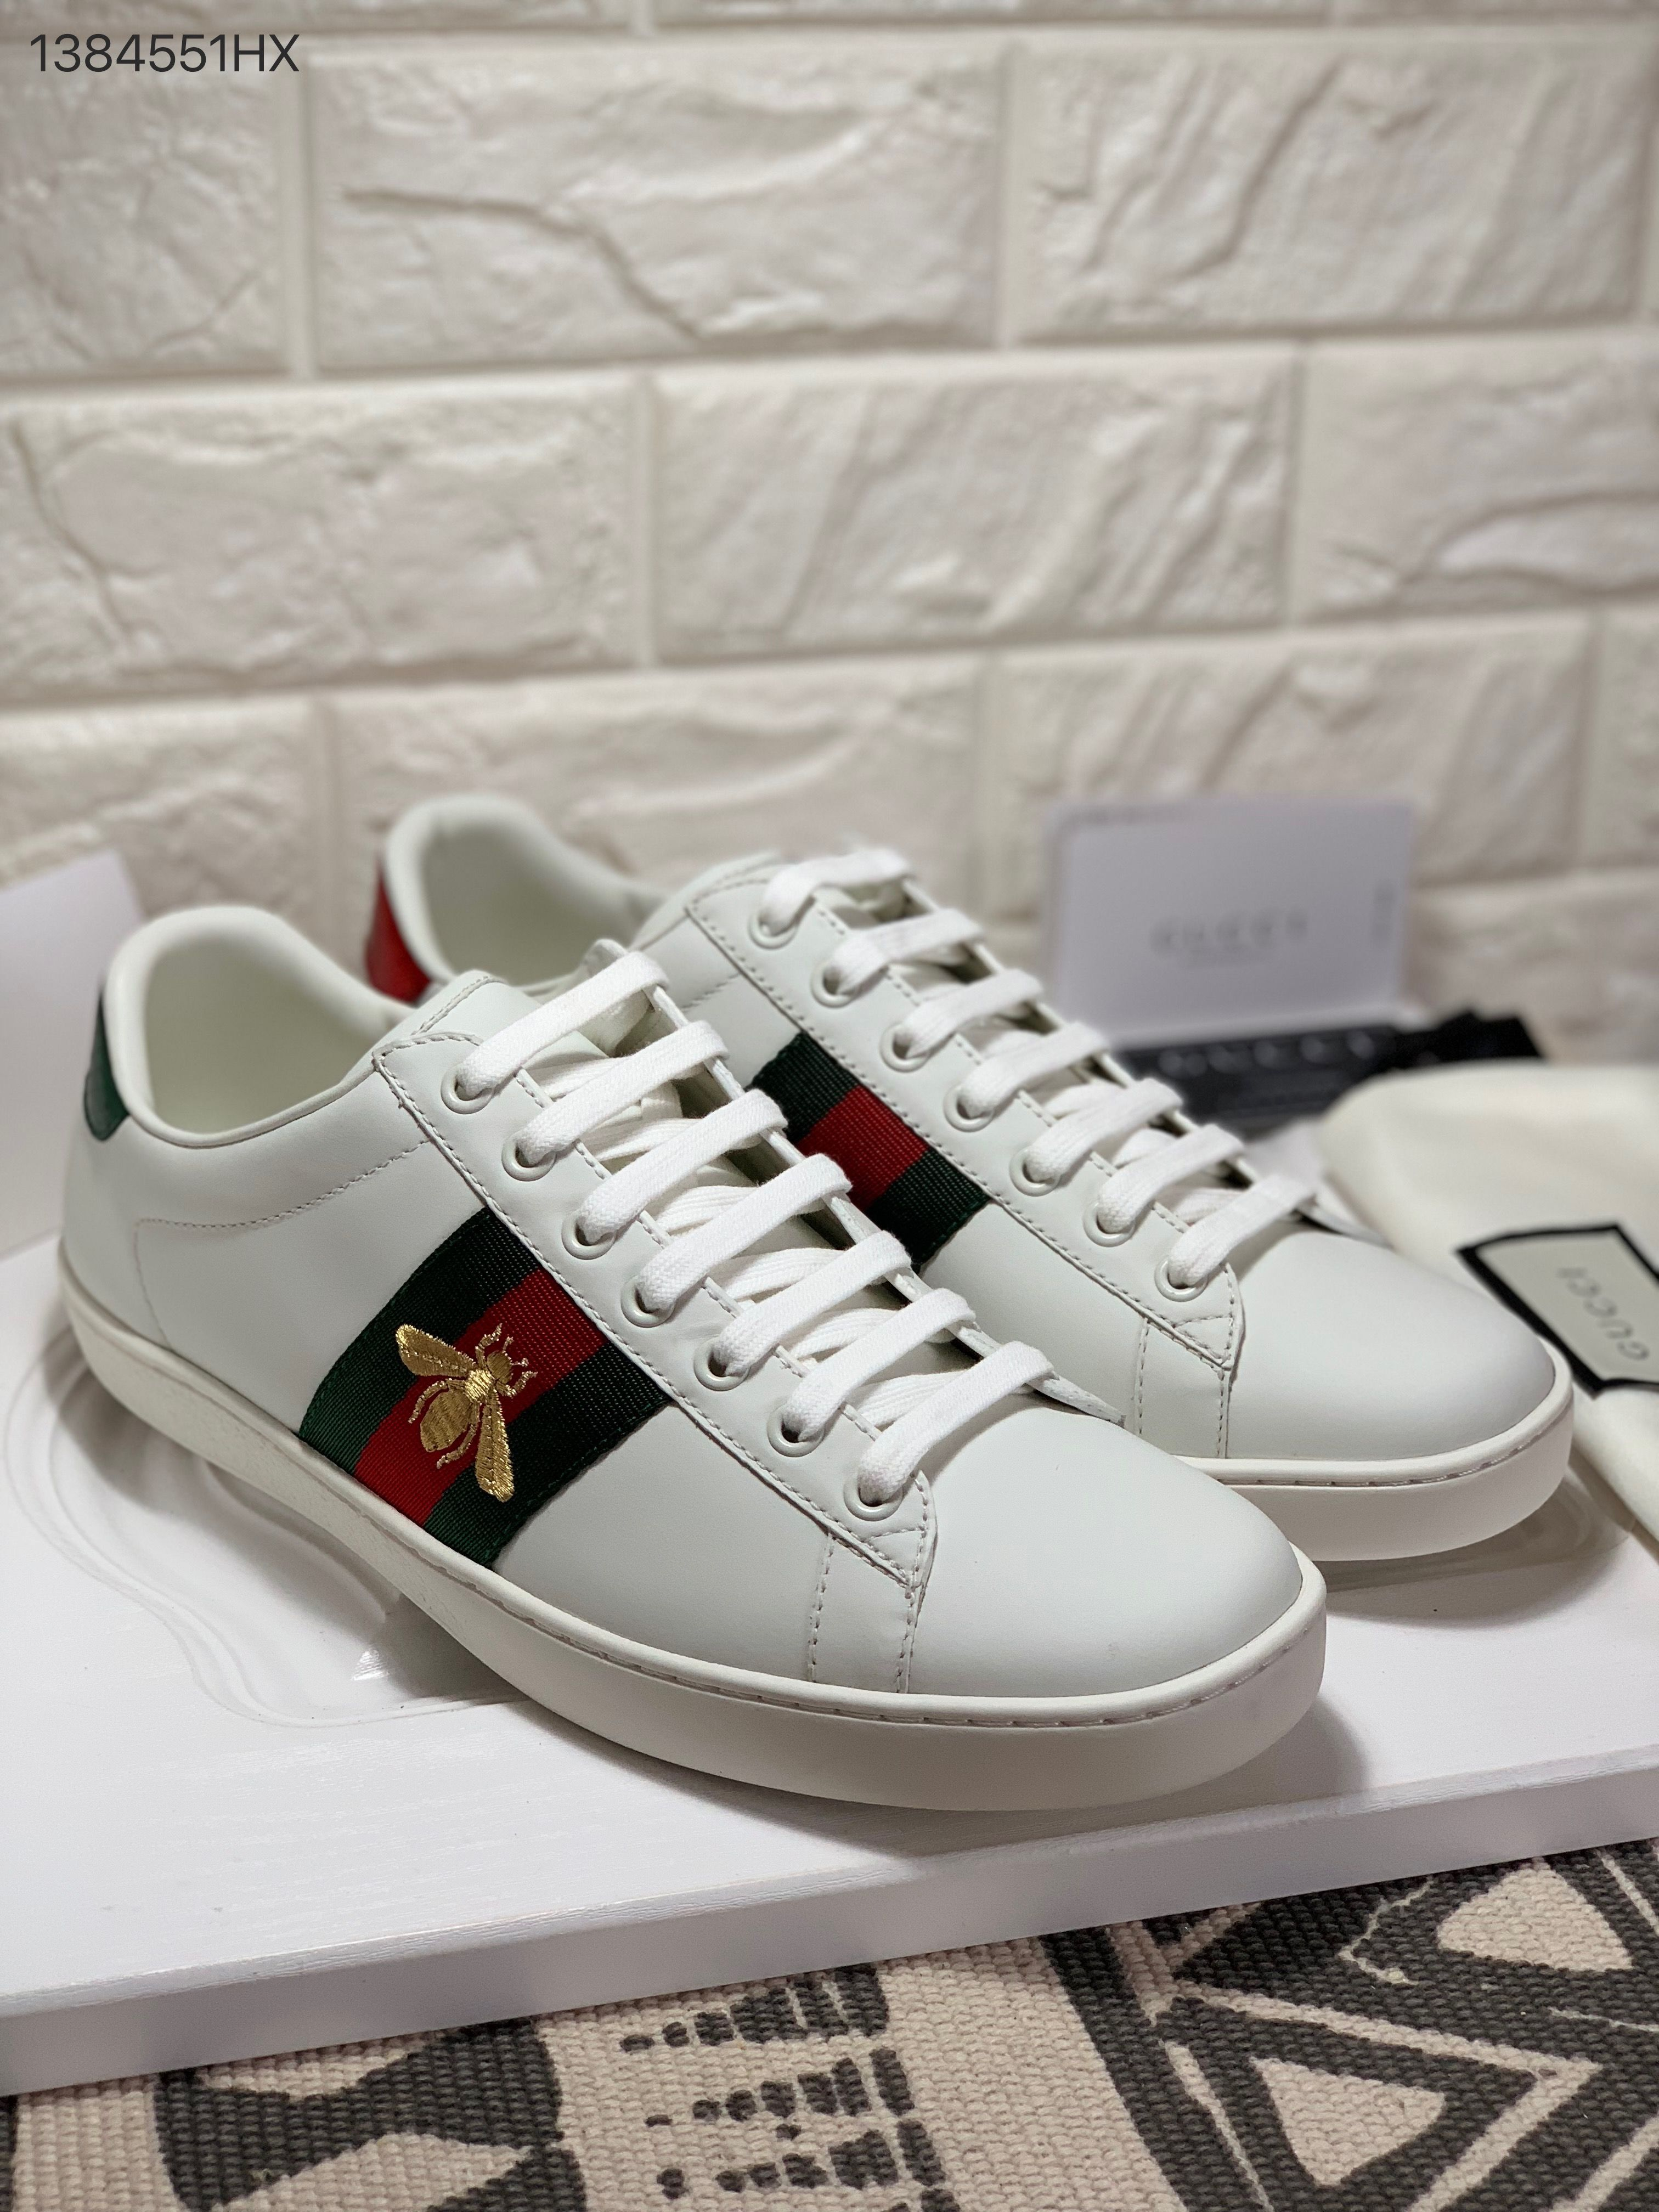 62be34cae16 Gucci woman man couple shoes white leather ace sneakers top with embroidered  bee